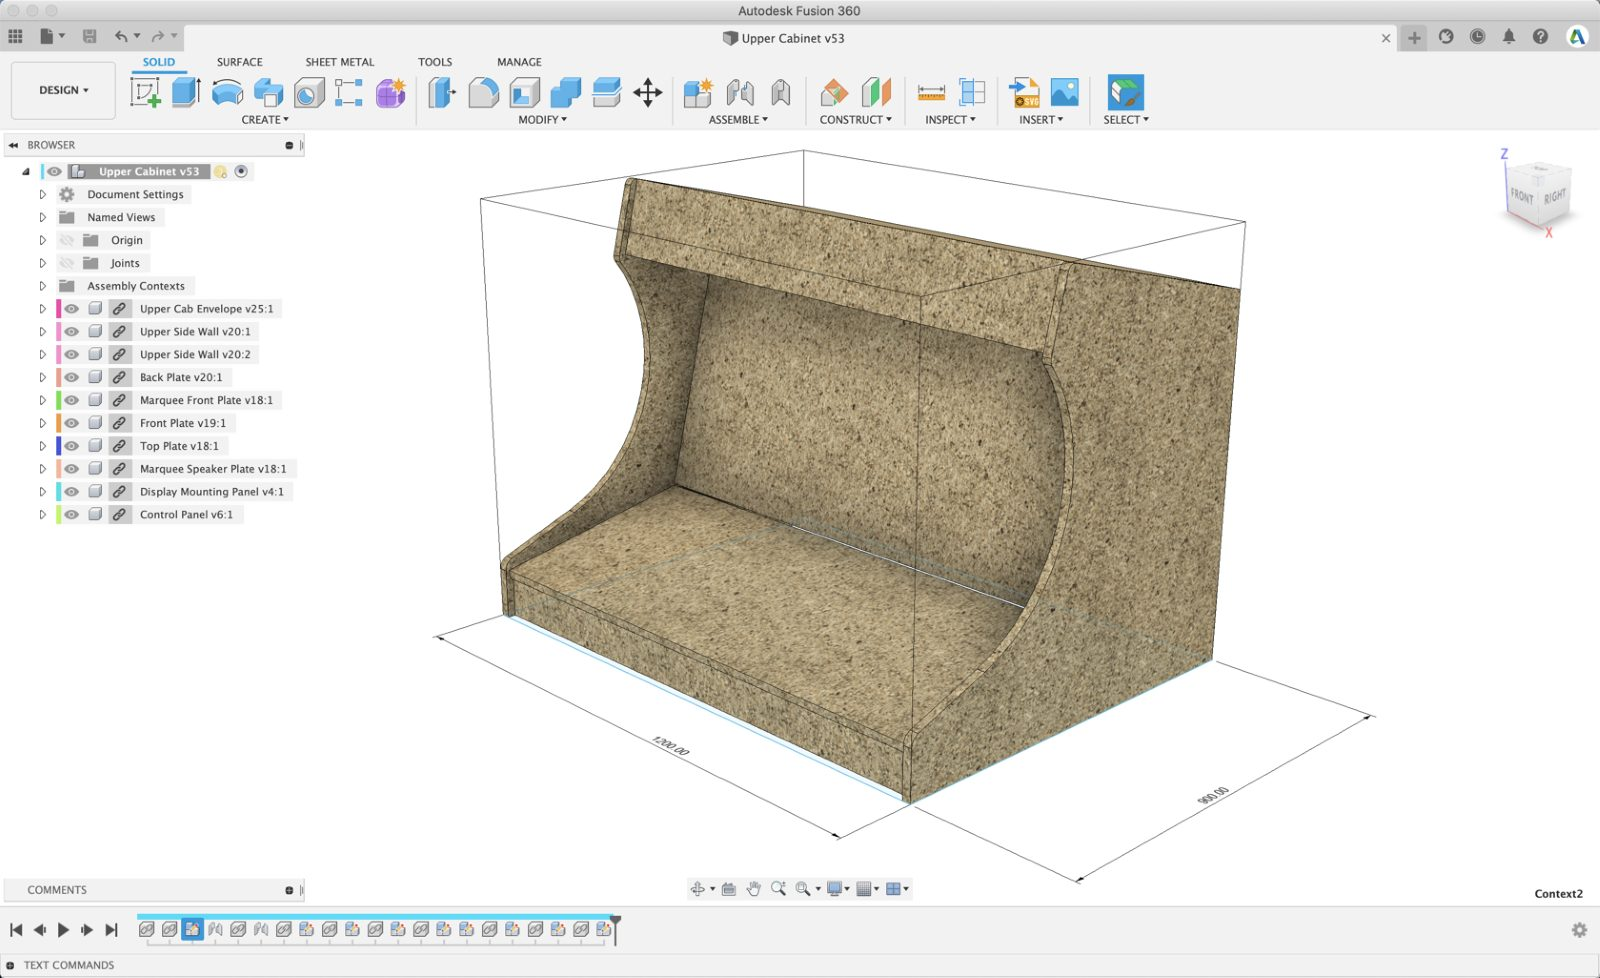 fusion-360-sync-all-assembly-contexts-components